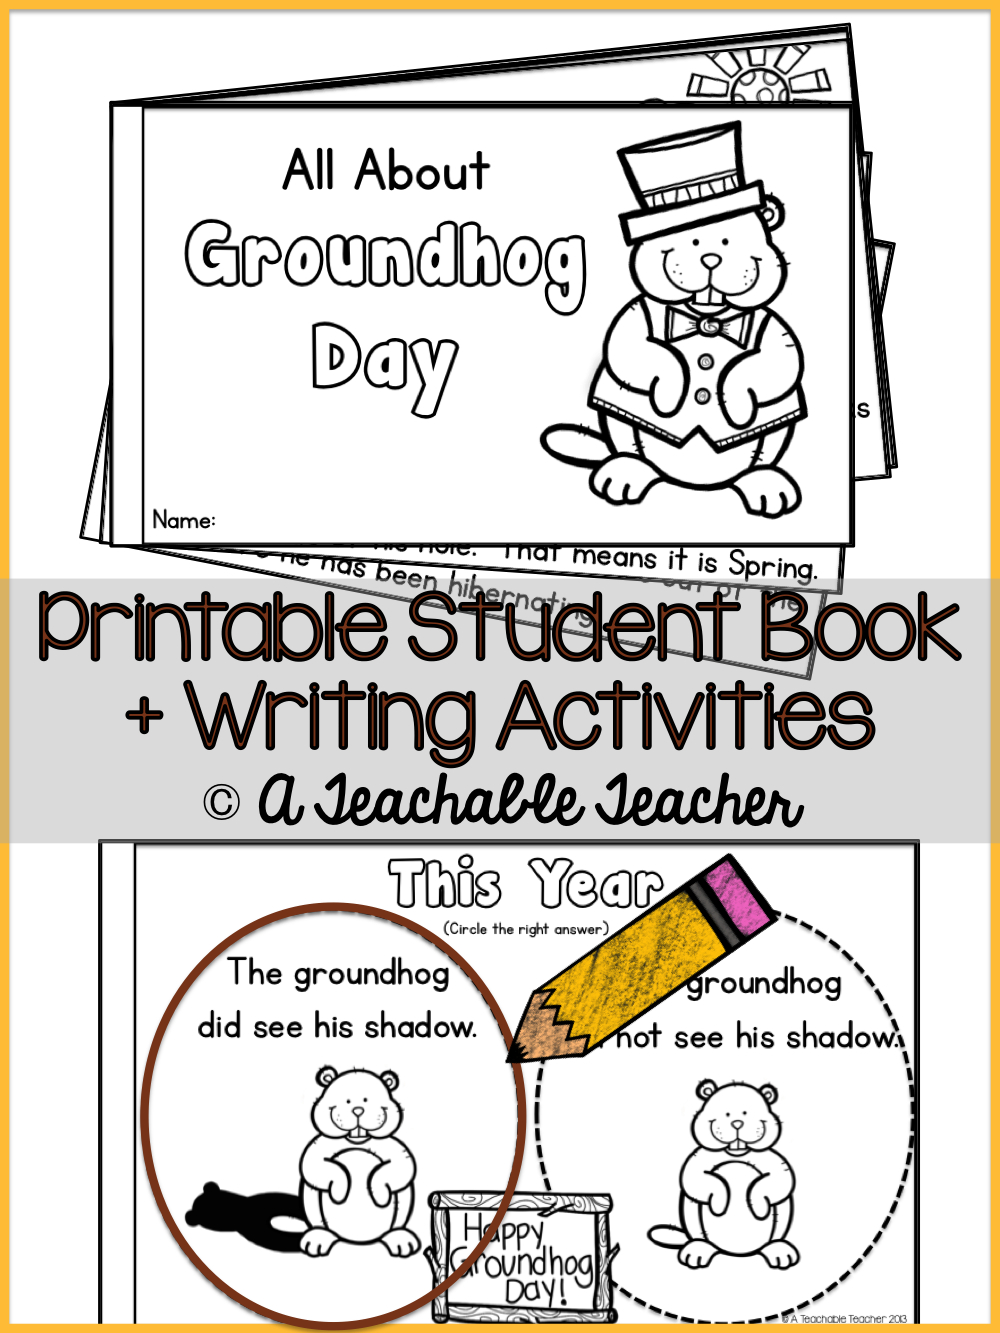 Printable Groundhog Day Book For Students. Teaches About The Ground - Free Printable Groundhog Day Booklet